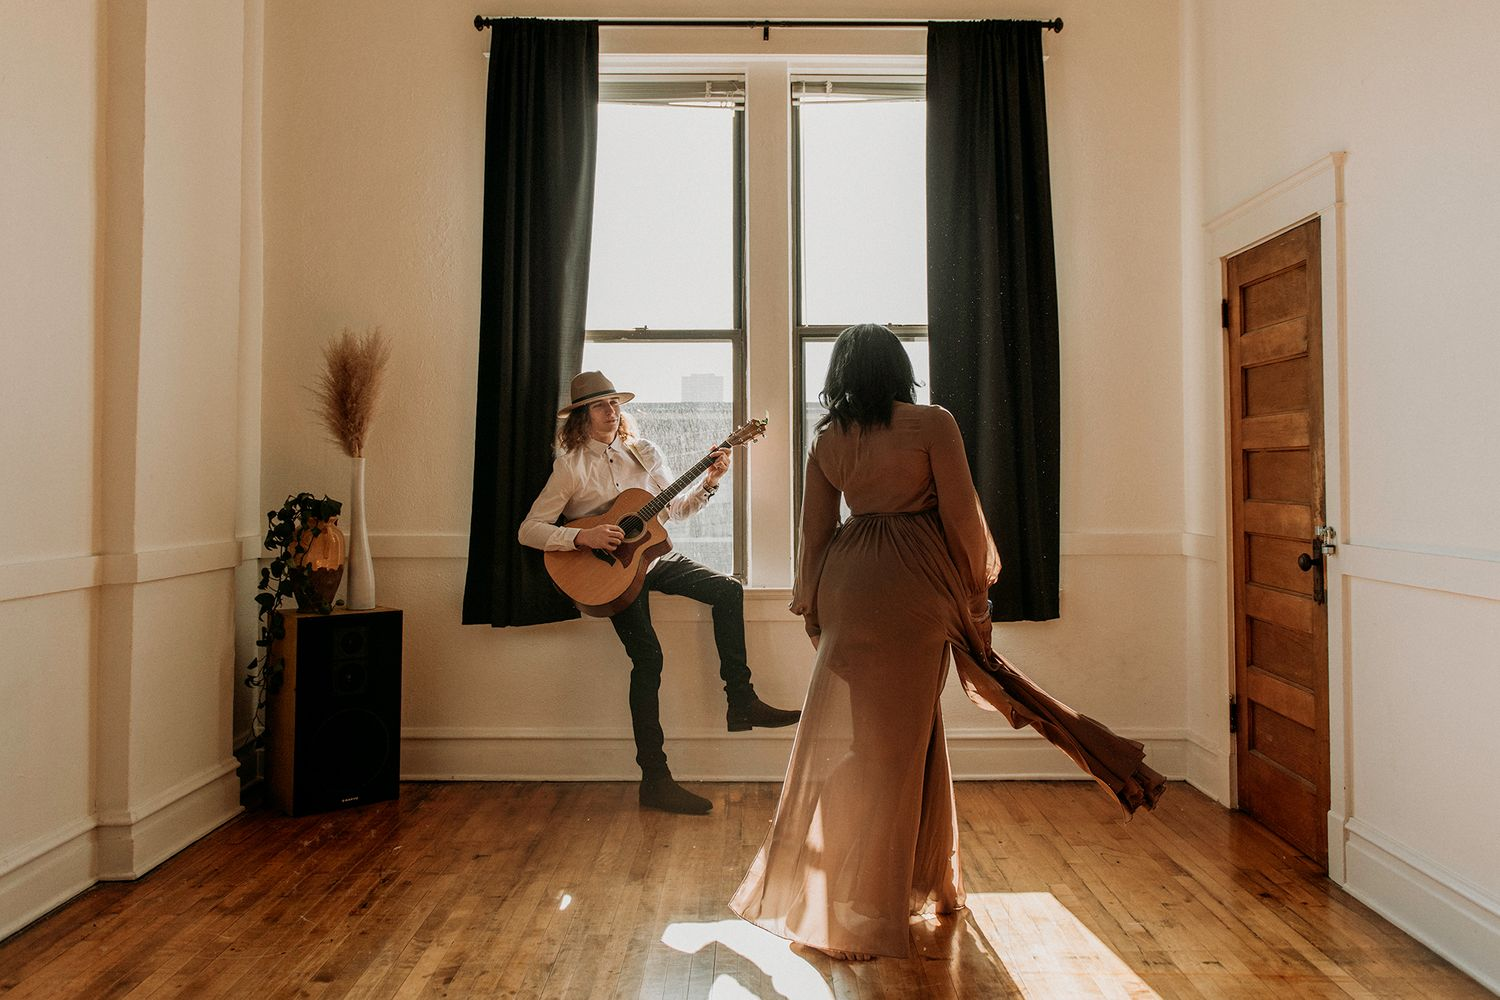 woman dancing with man playing guitar behind her during studio couples session